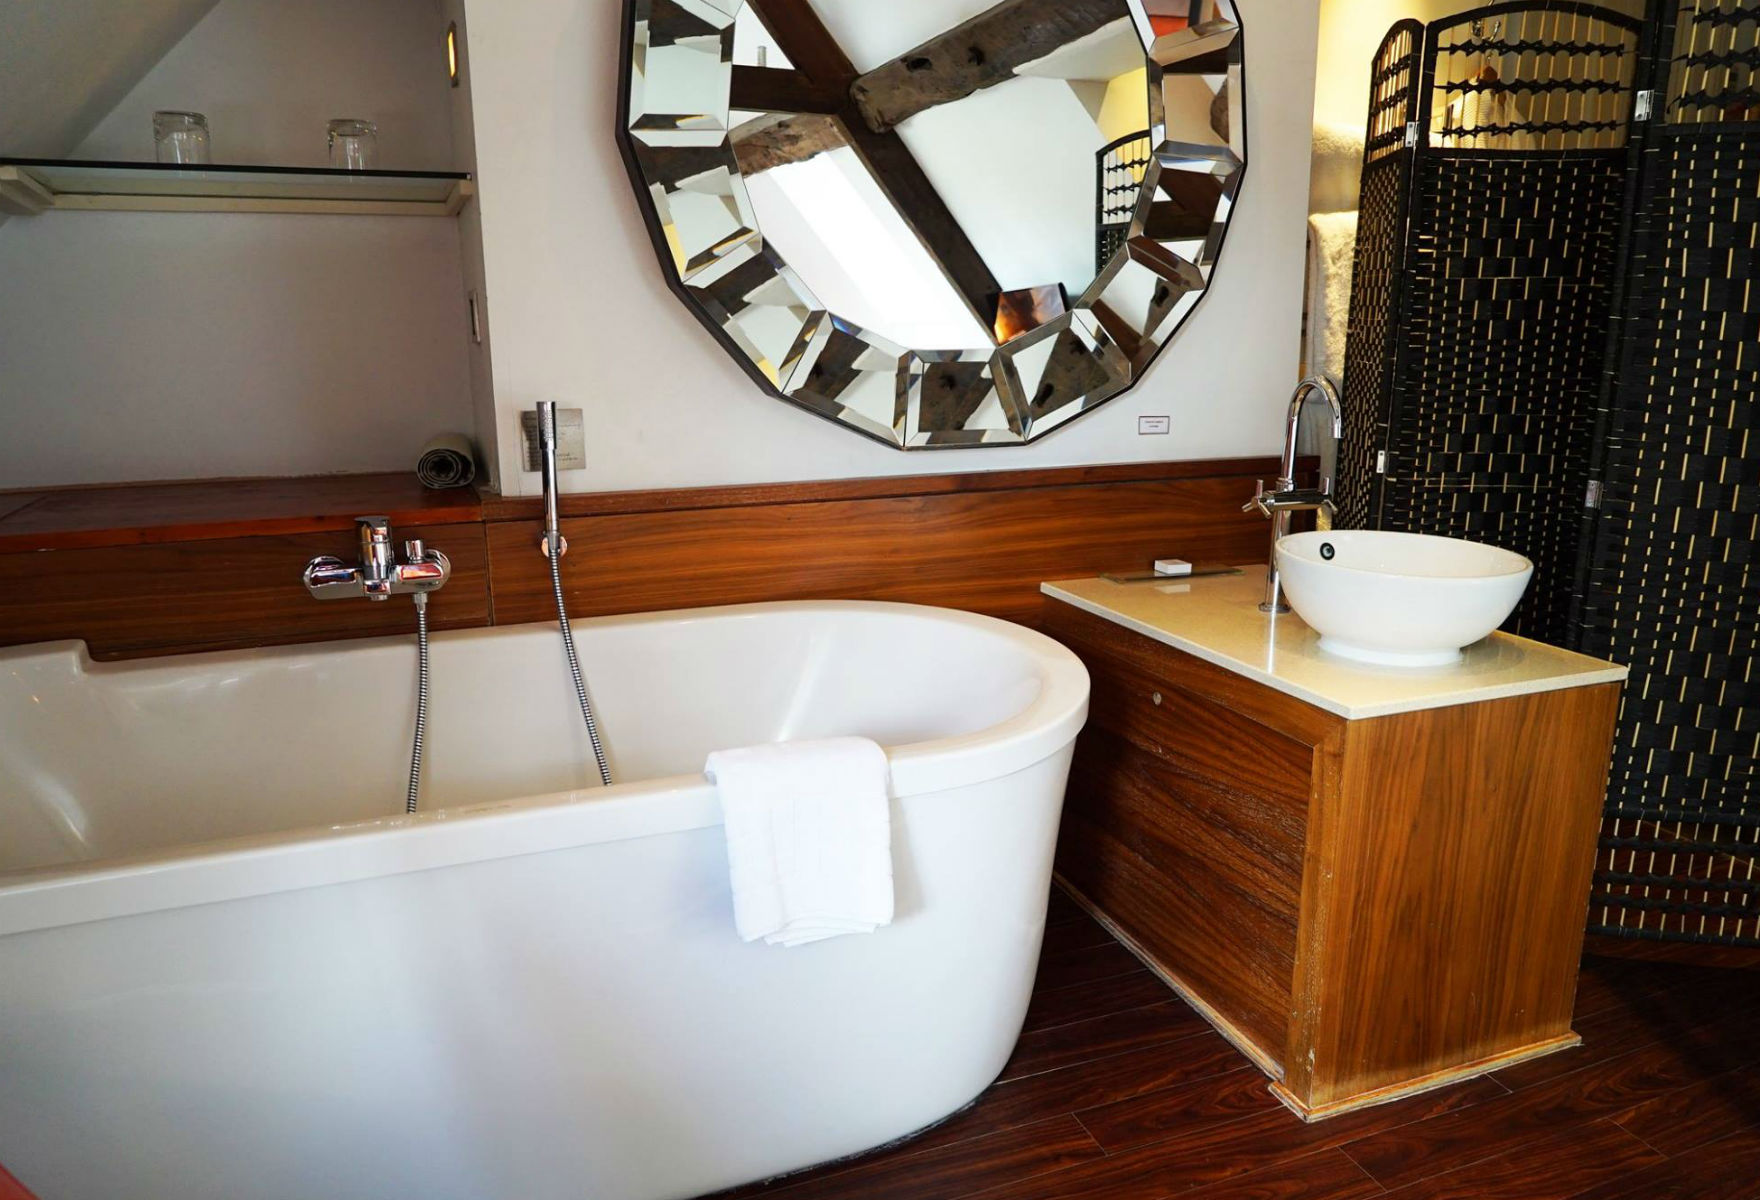 Freestanding bath at Cotswold House Hotel (credit: Cotswold House Hotel & Spa/Facebook)